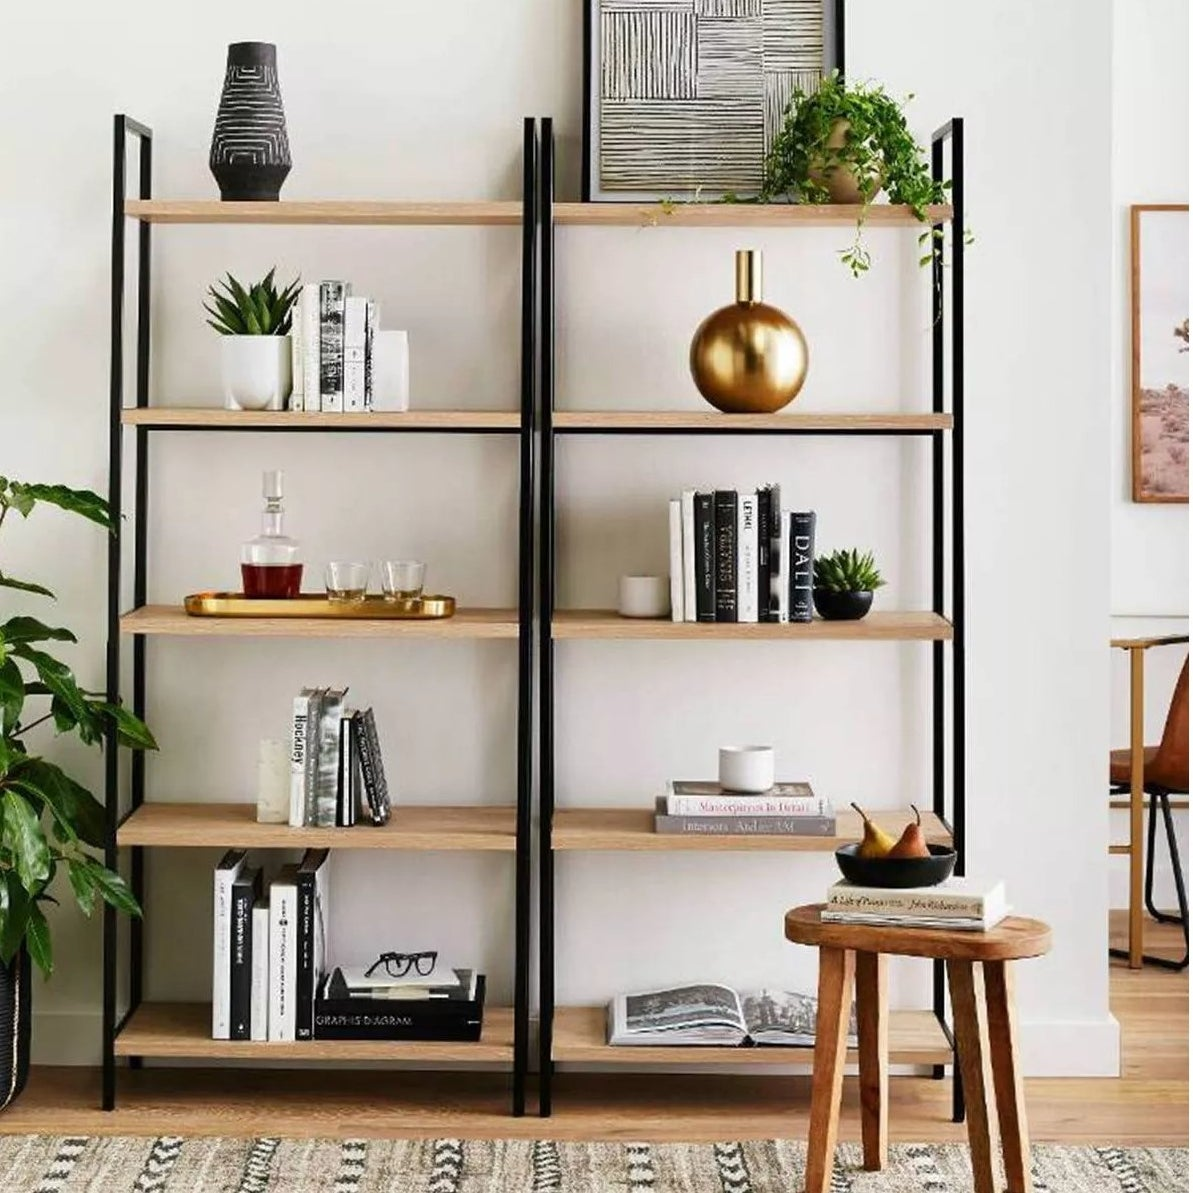 The ladder bookshelf with a metal frame and light wooden shelves in a living room